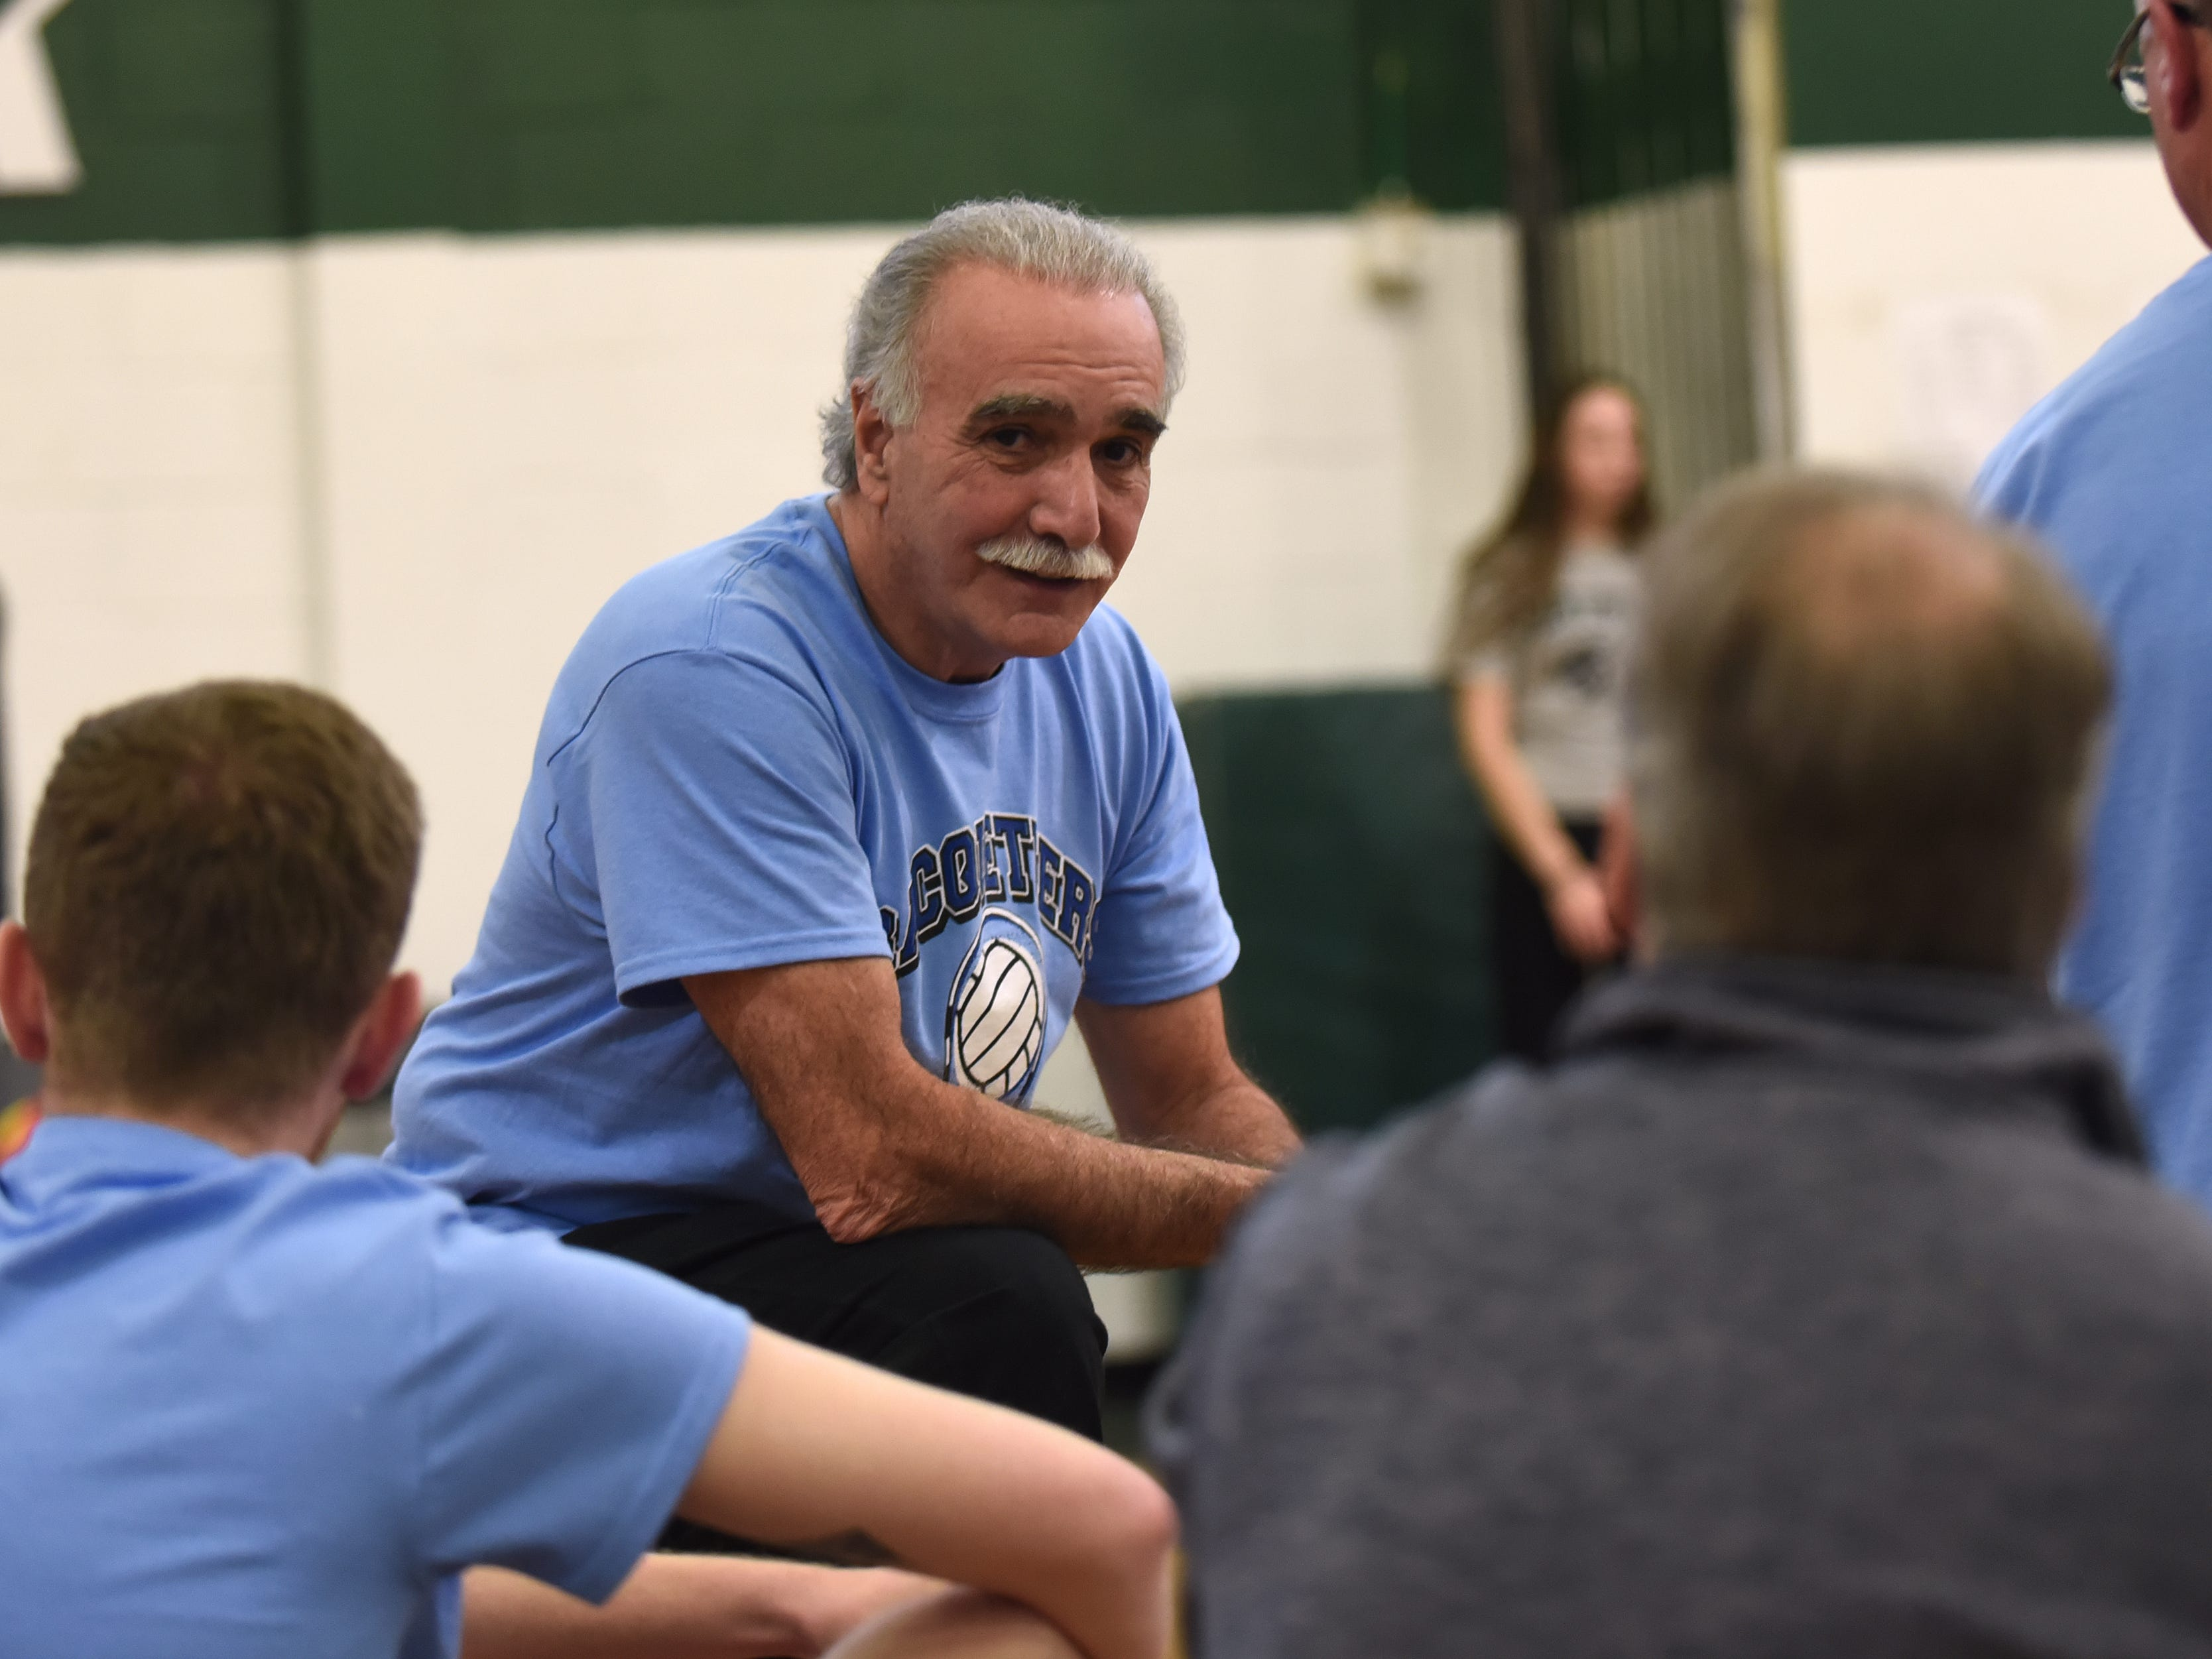 A Fundraising Volleyball Tournament is held at Midland Park High School in Midland Park on Saturday February 9, 2019. The event is to raise money for the families of two young people seriously injured in an auto accident in December. John Passero (center) and his team the Racqueteers get ready to play. Passero's daughter Jenna was one of the ones injured in the accident.